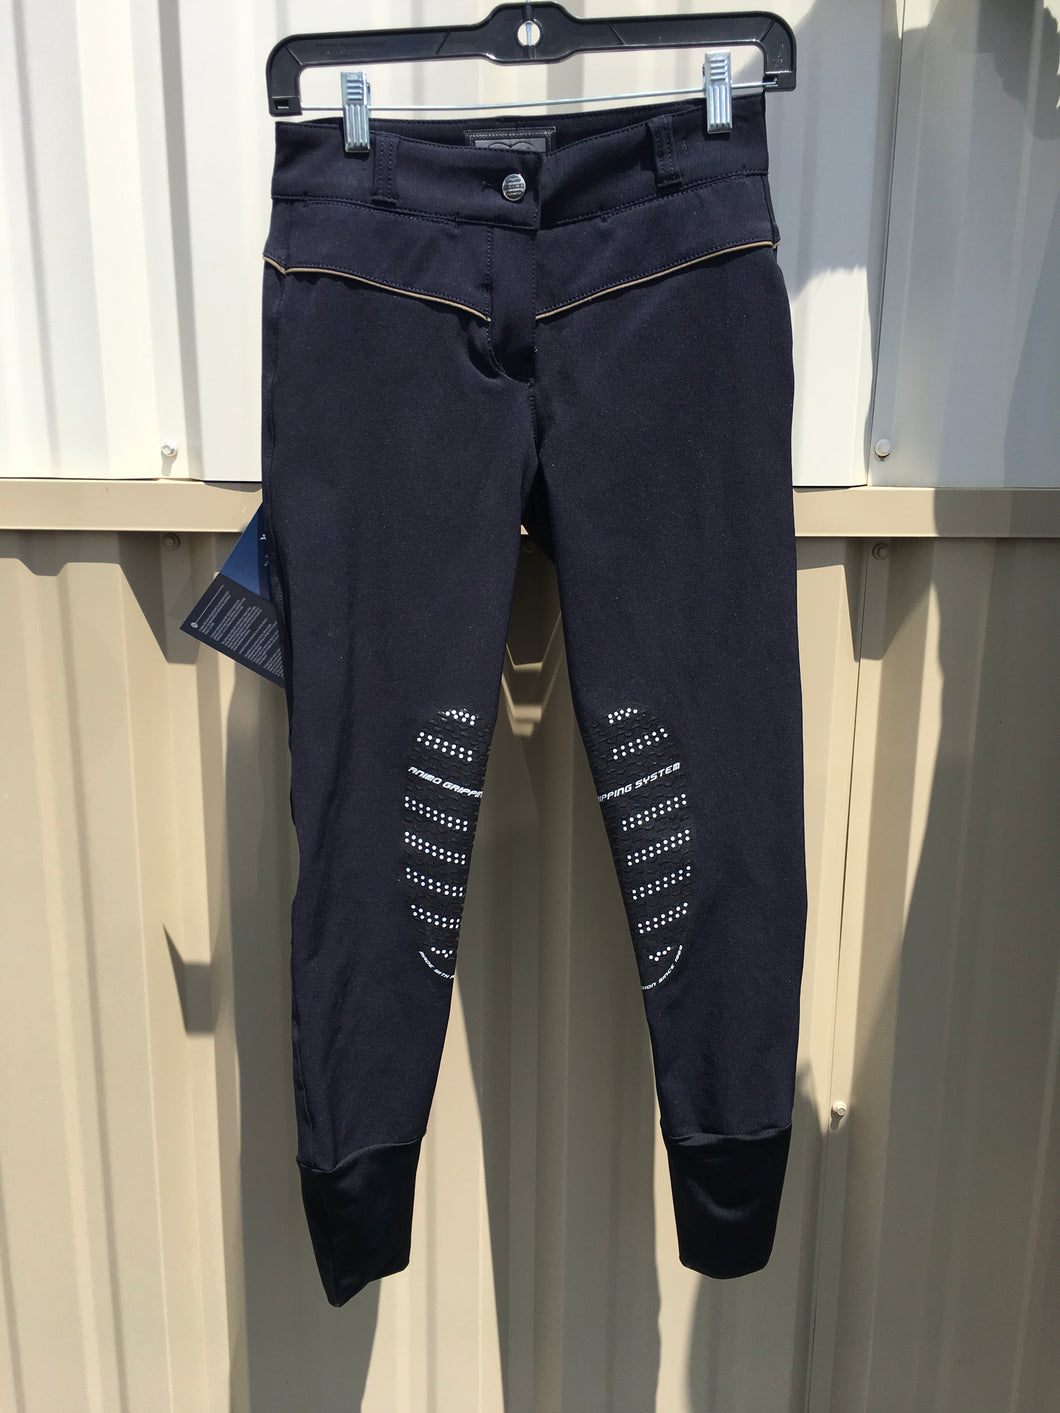 Spring 2019 Navy Breech - Low rise